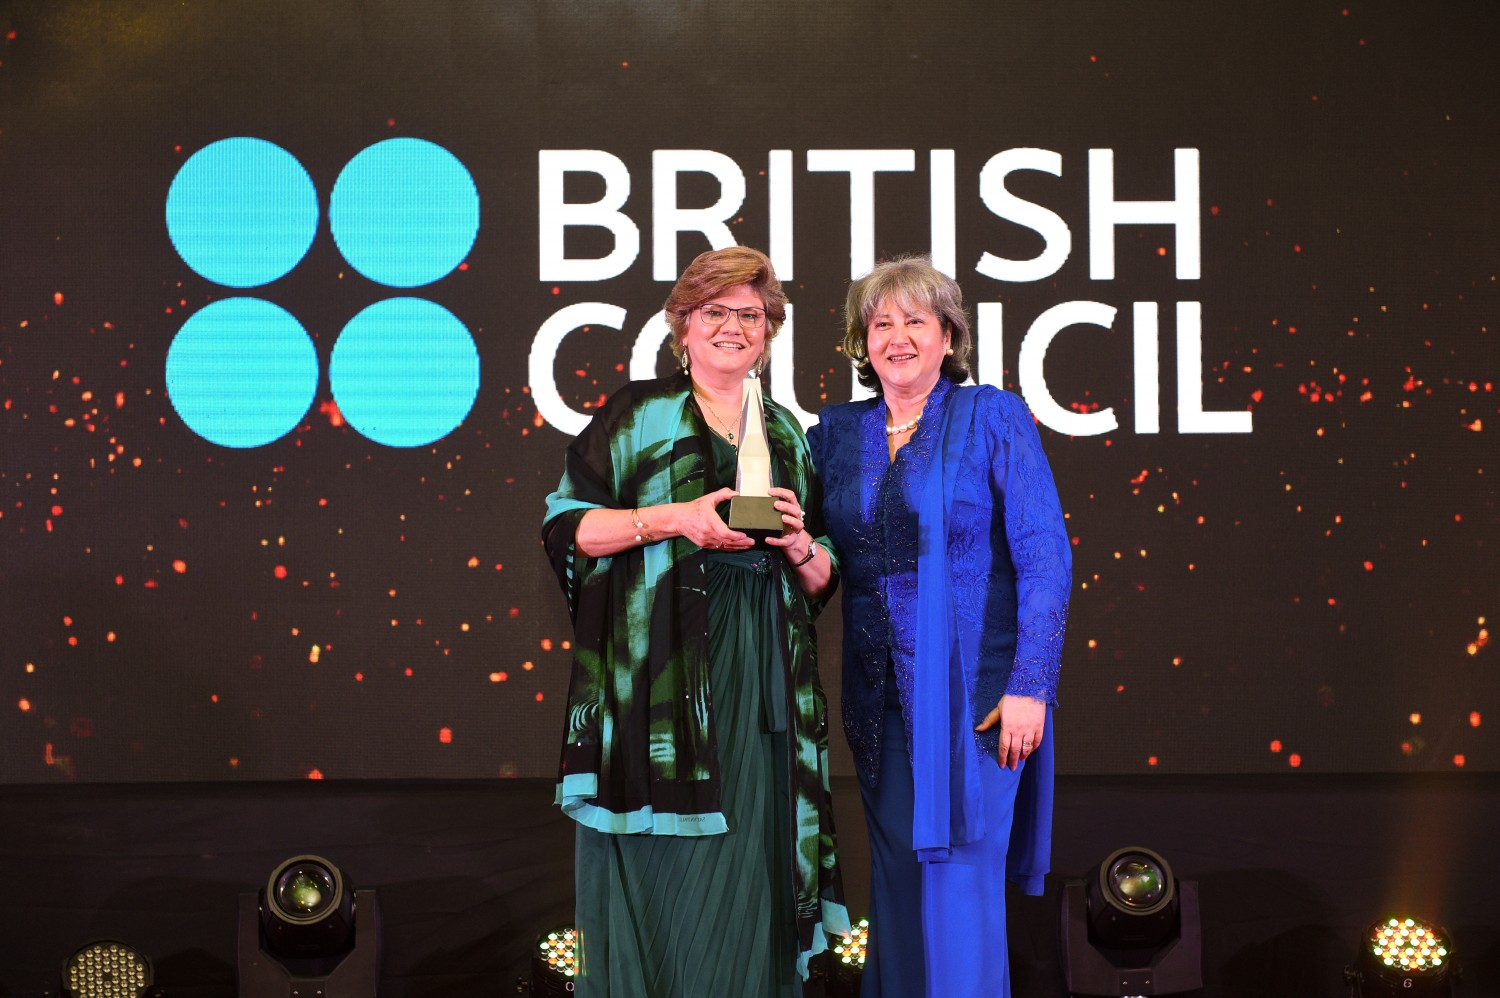 Picture L-R: Sarah Deverall, Country Director of British Council receiving the award from H.E. Vicki Treadell CMG MVO, British High Commissioner to Malaysia